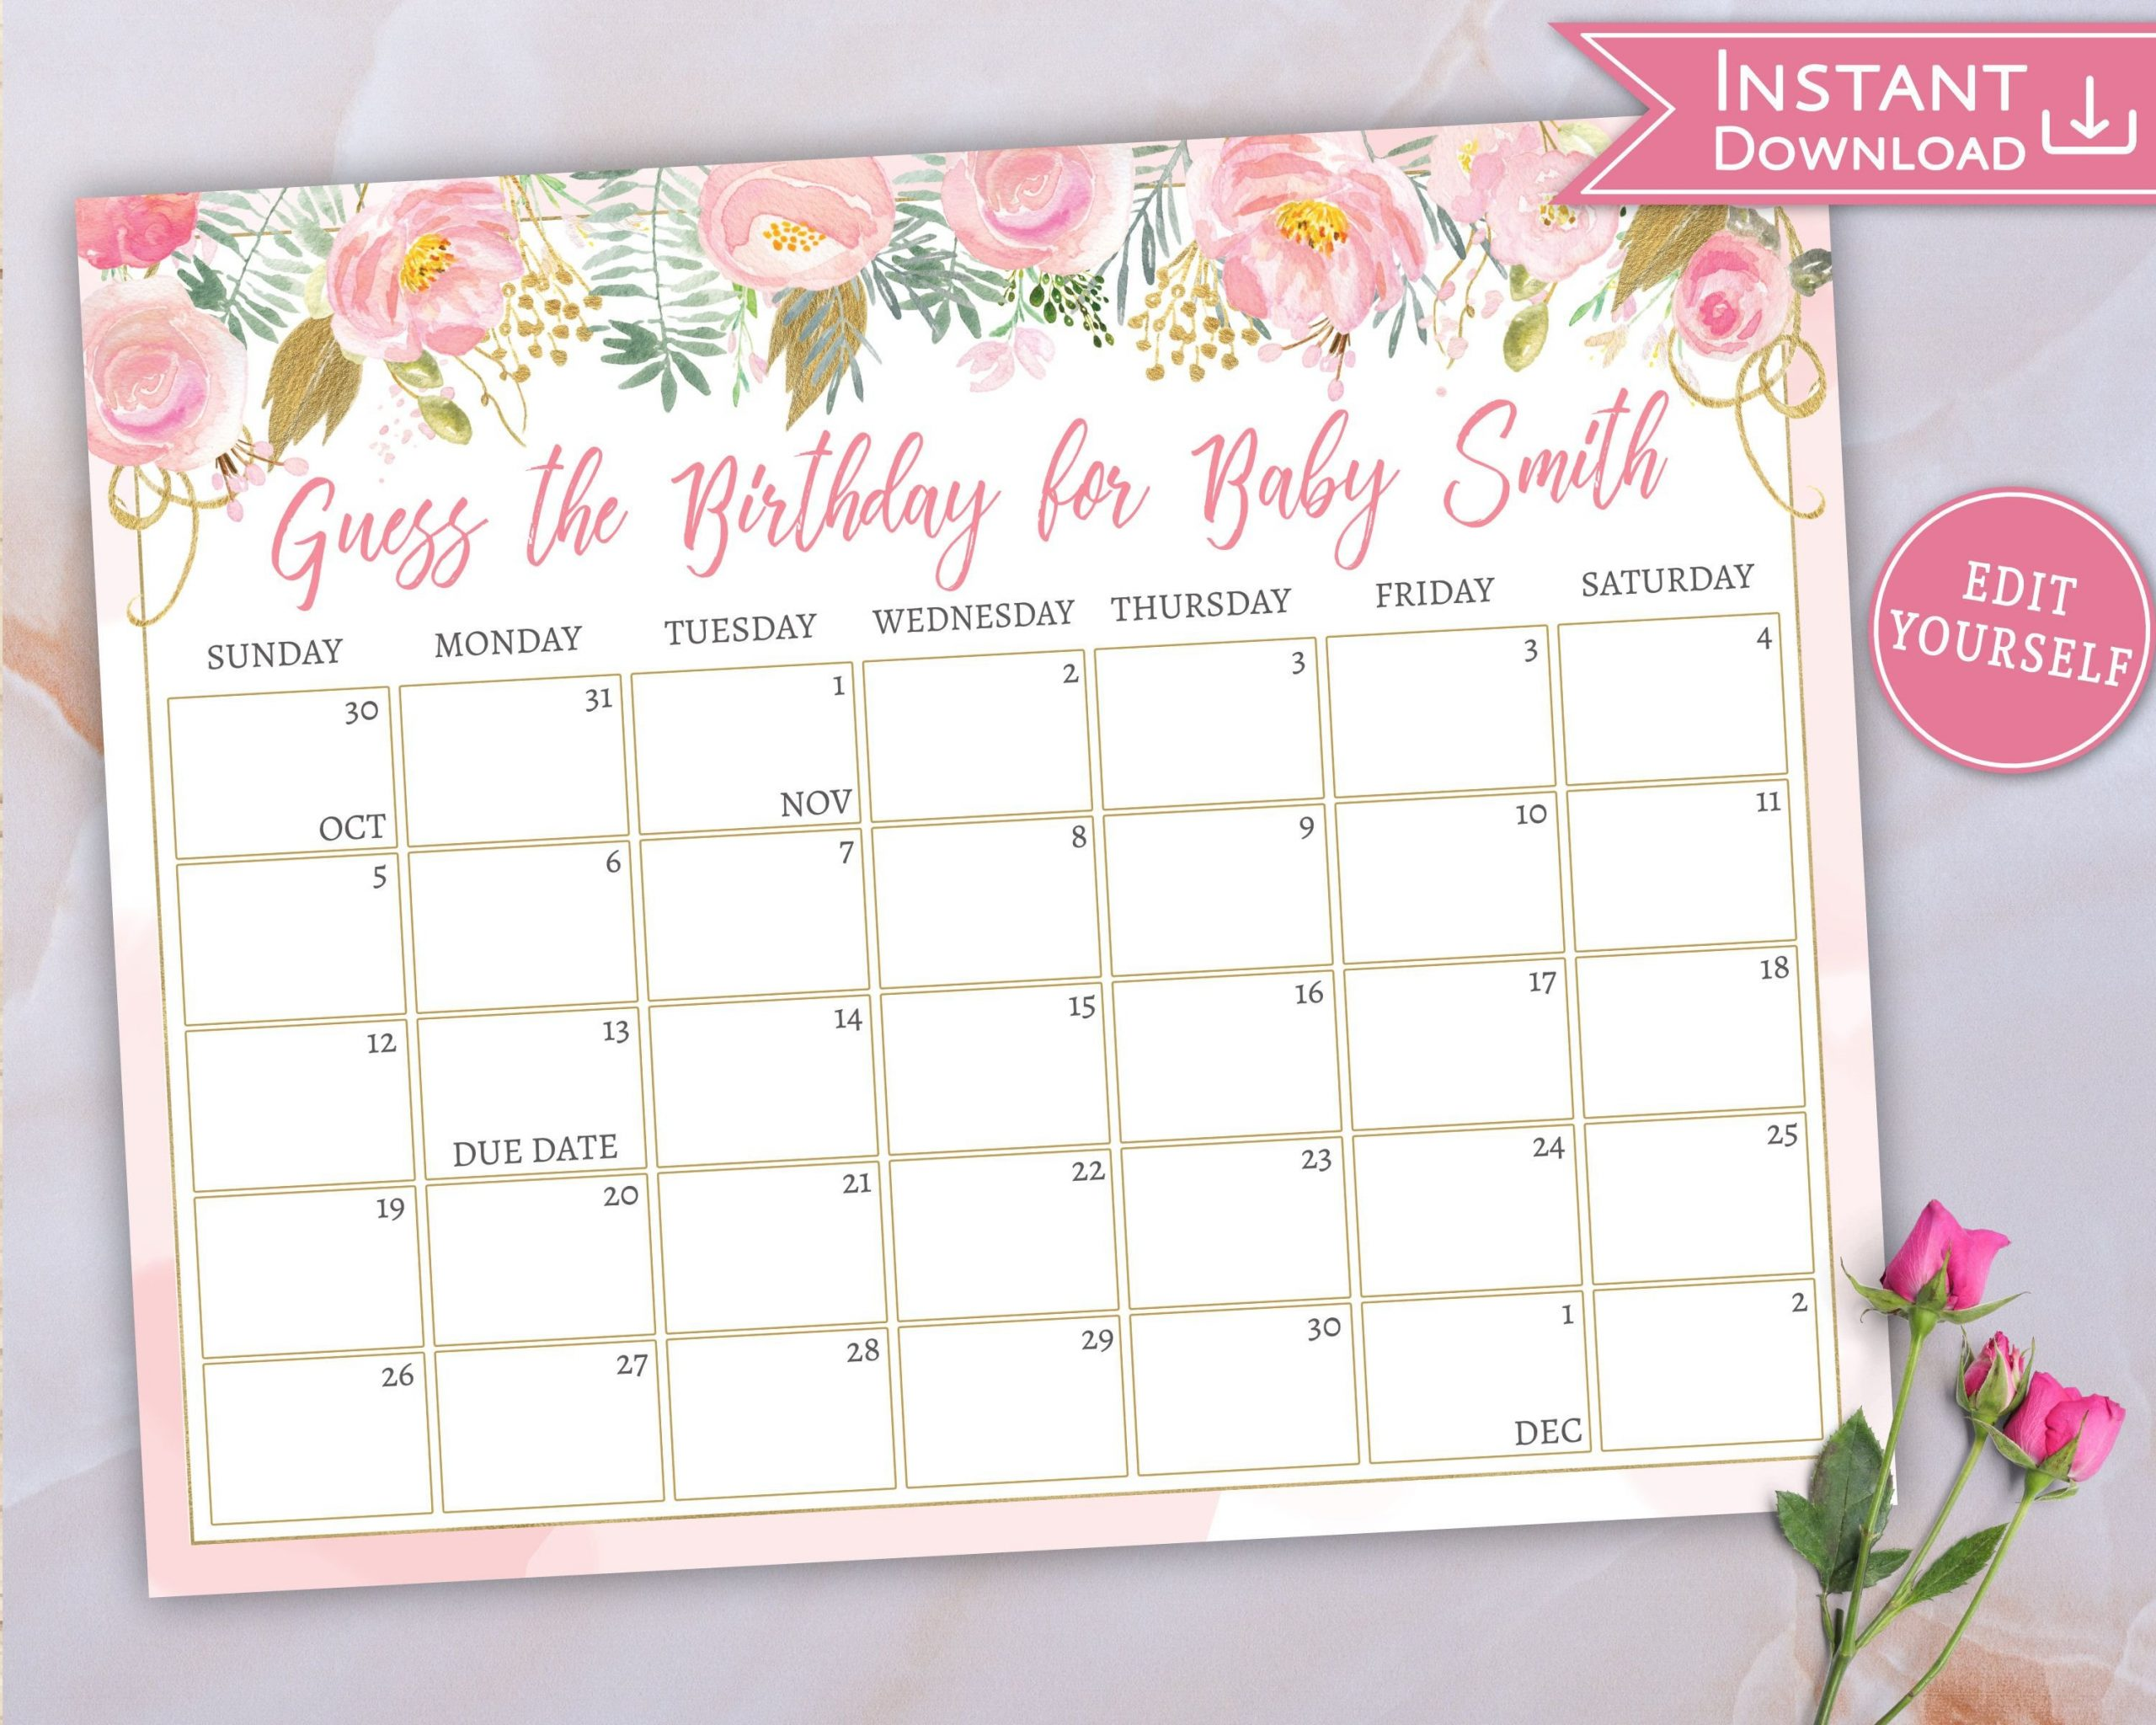 Baby Due Date Calendar, Guess Baby'S Birthday, Floral Pink Printable Baby Due Date Calendar